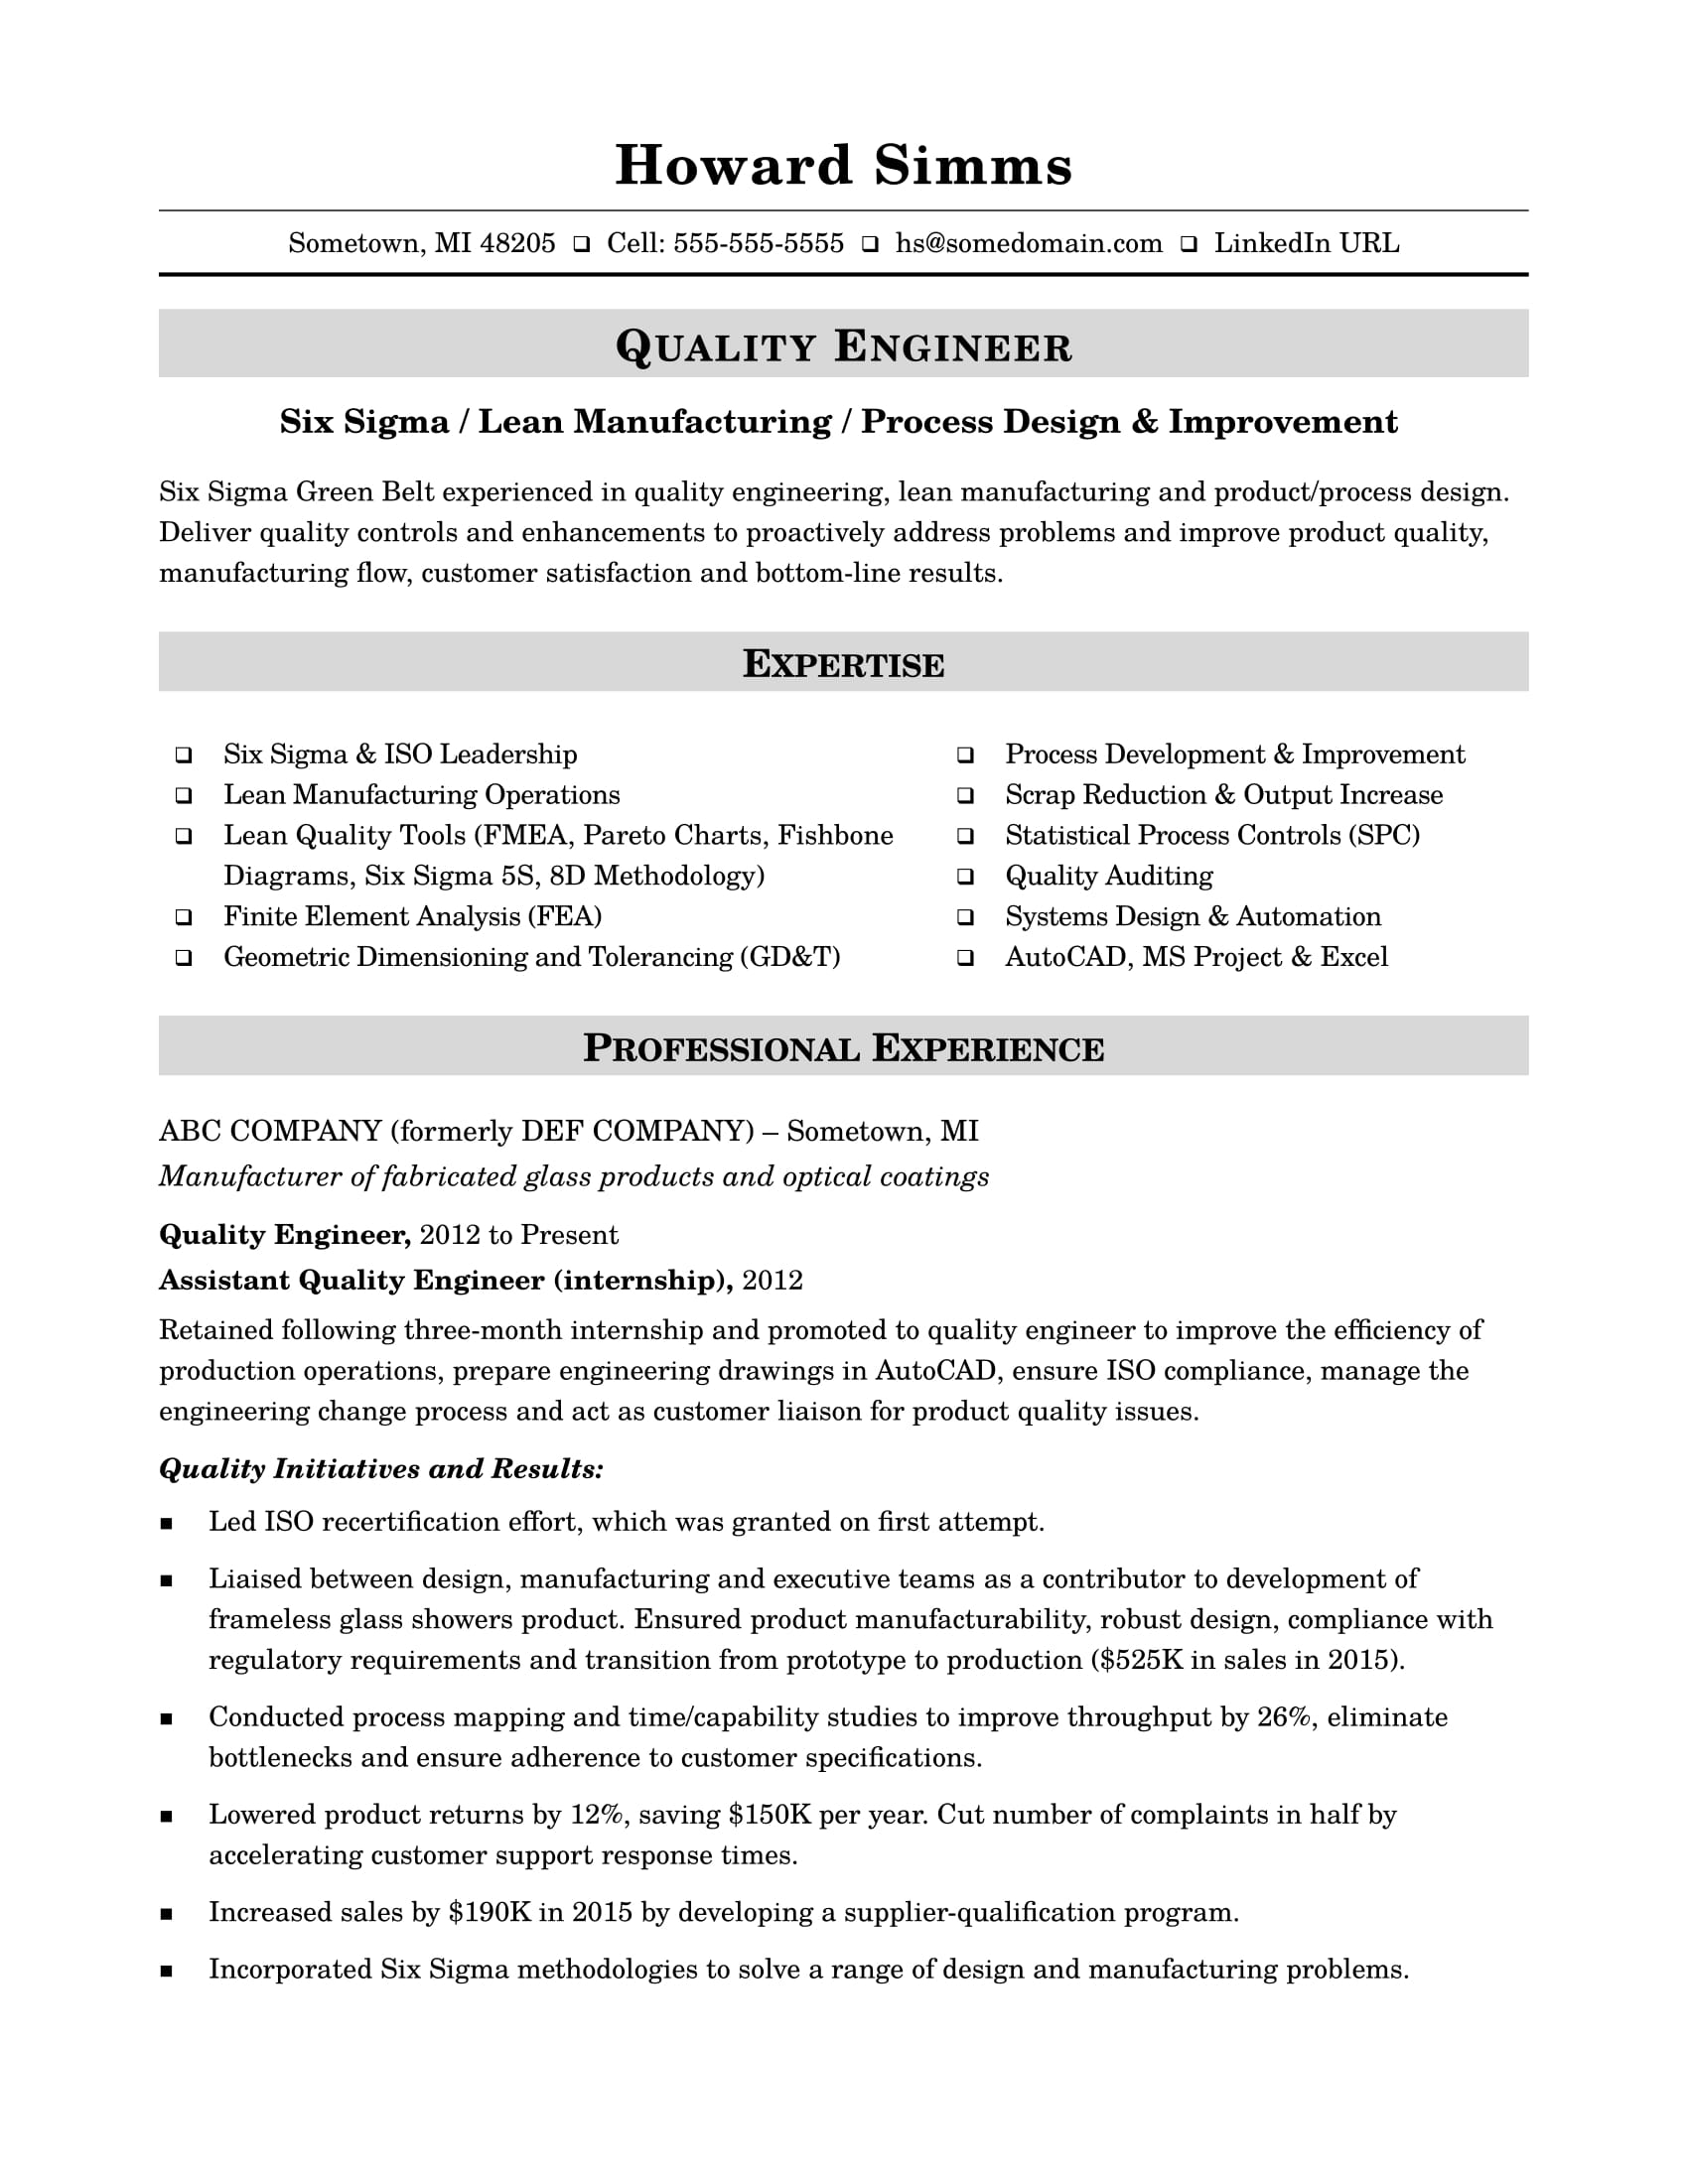 Sample Resume for a Midlevel Quality